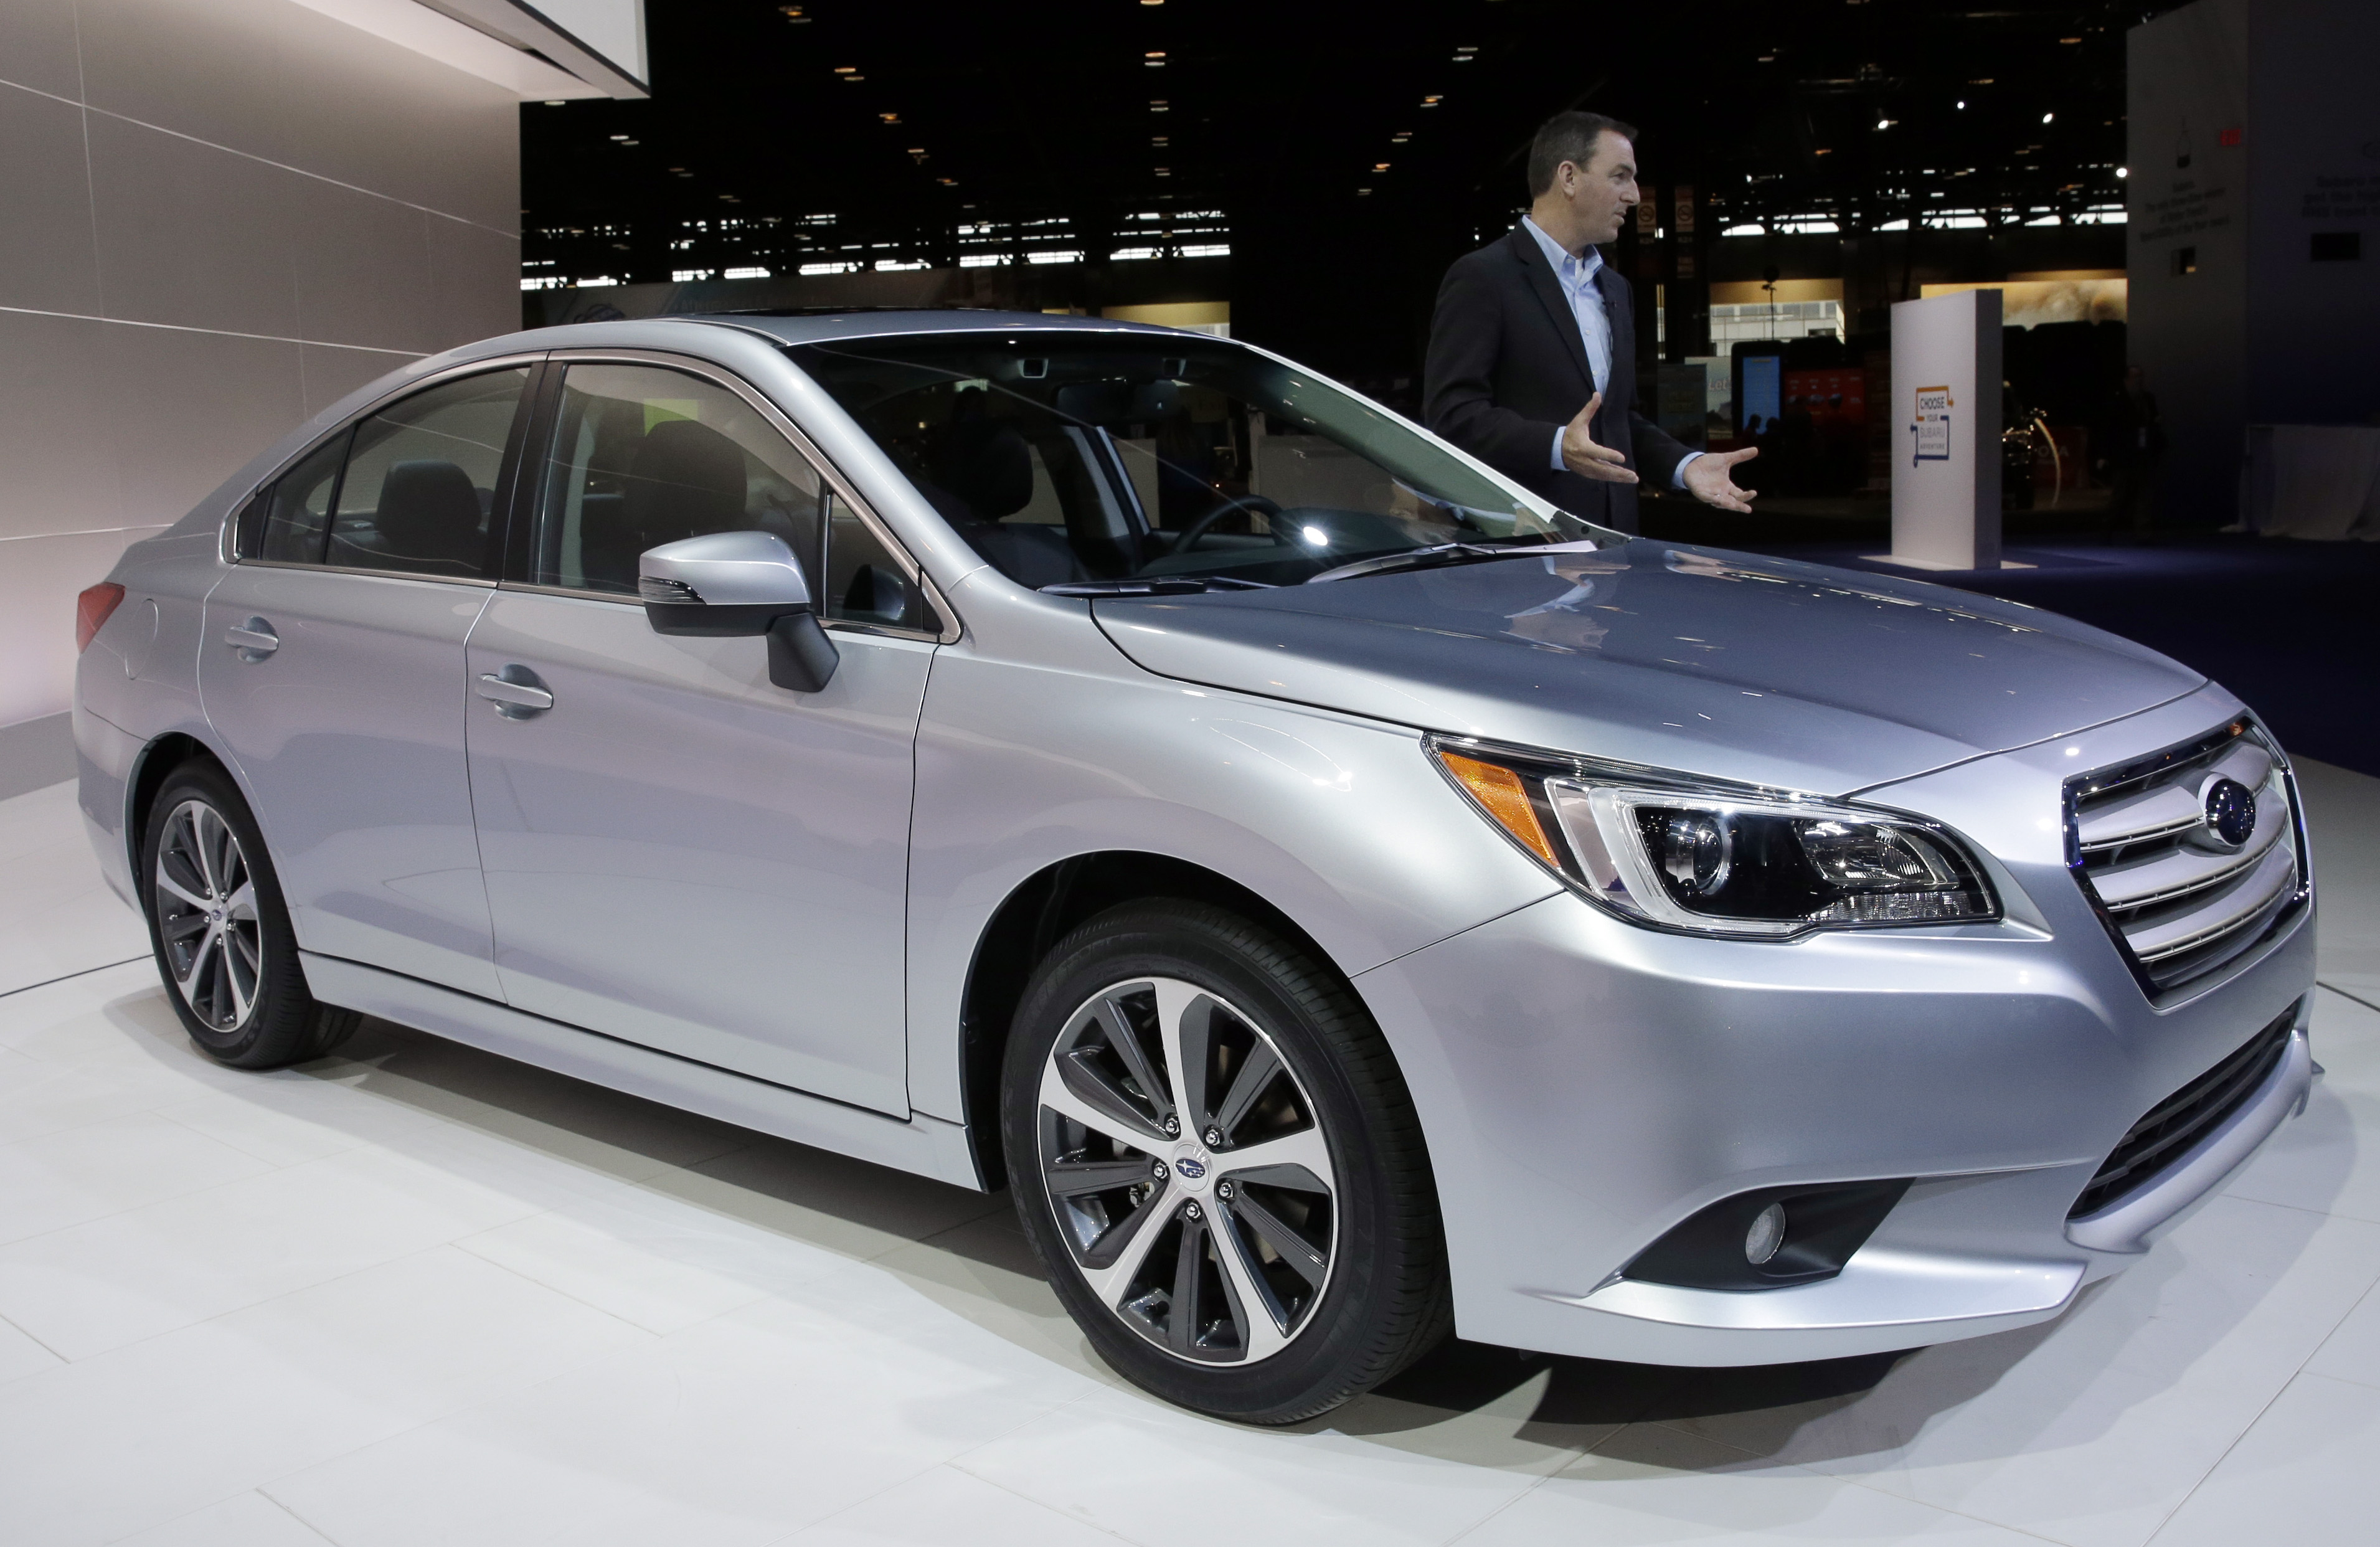 2015 Subaru Legacy debuts as Roomiest ever (AP photo/Nam Y. Huh, File)